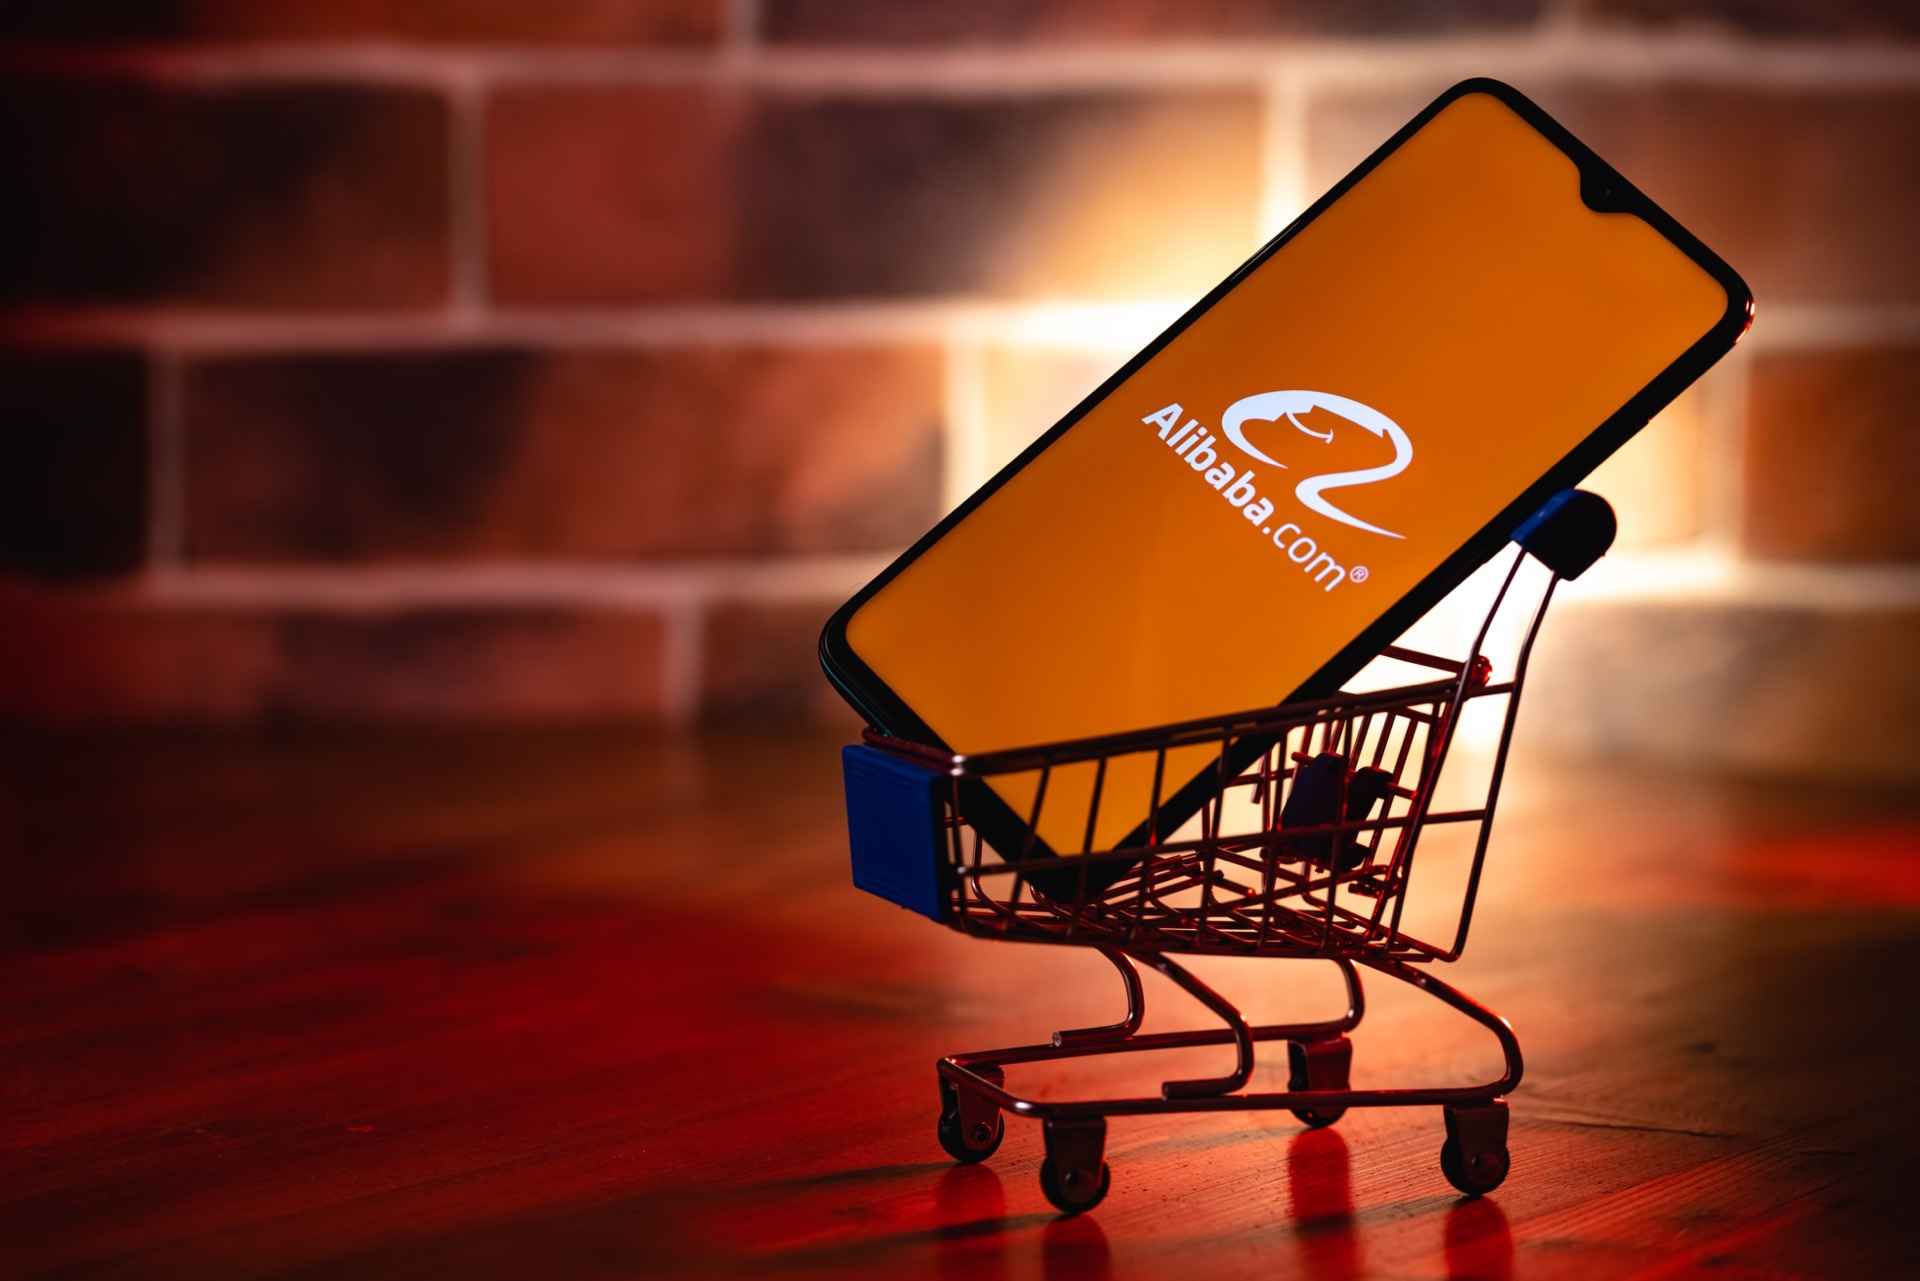 Alibaba in the red after suffering $2.8bn antitrust fine